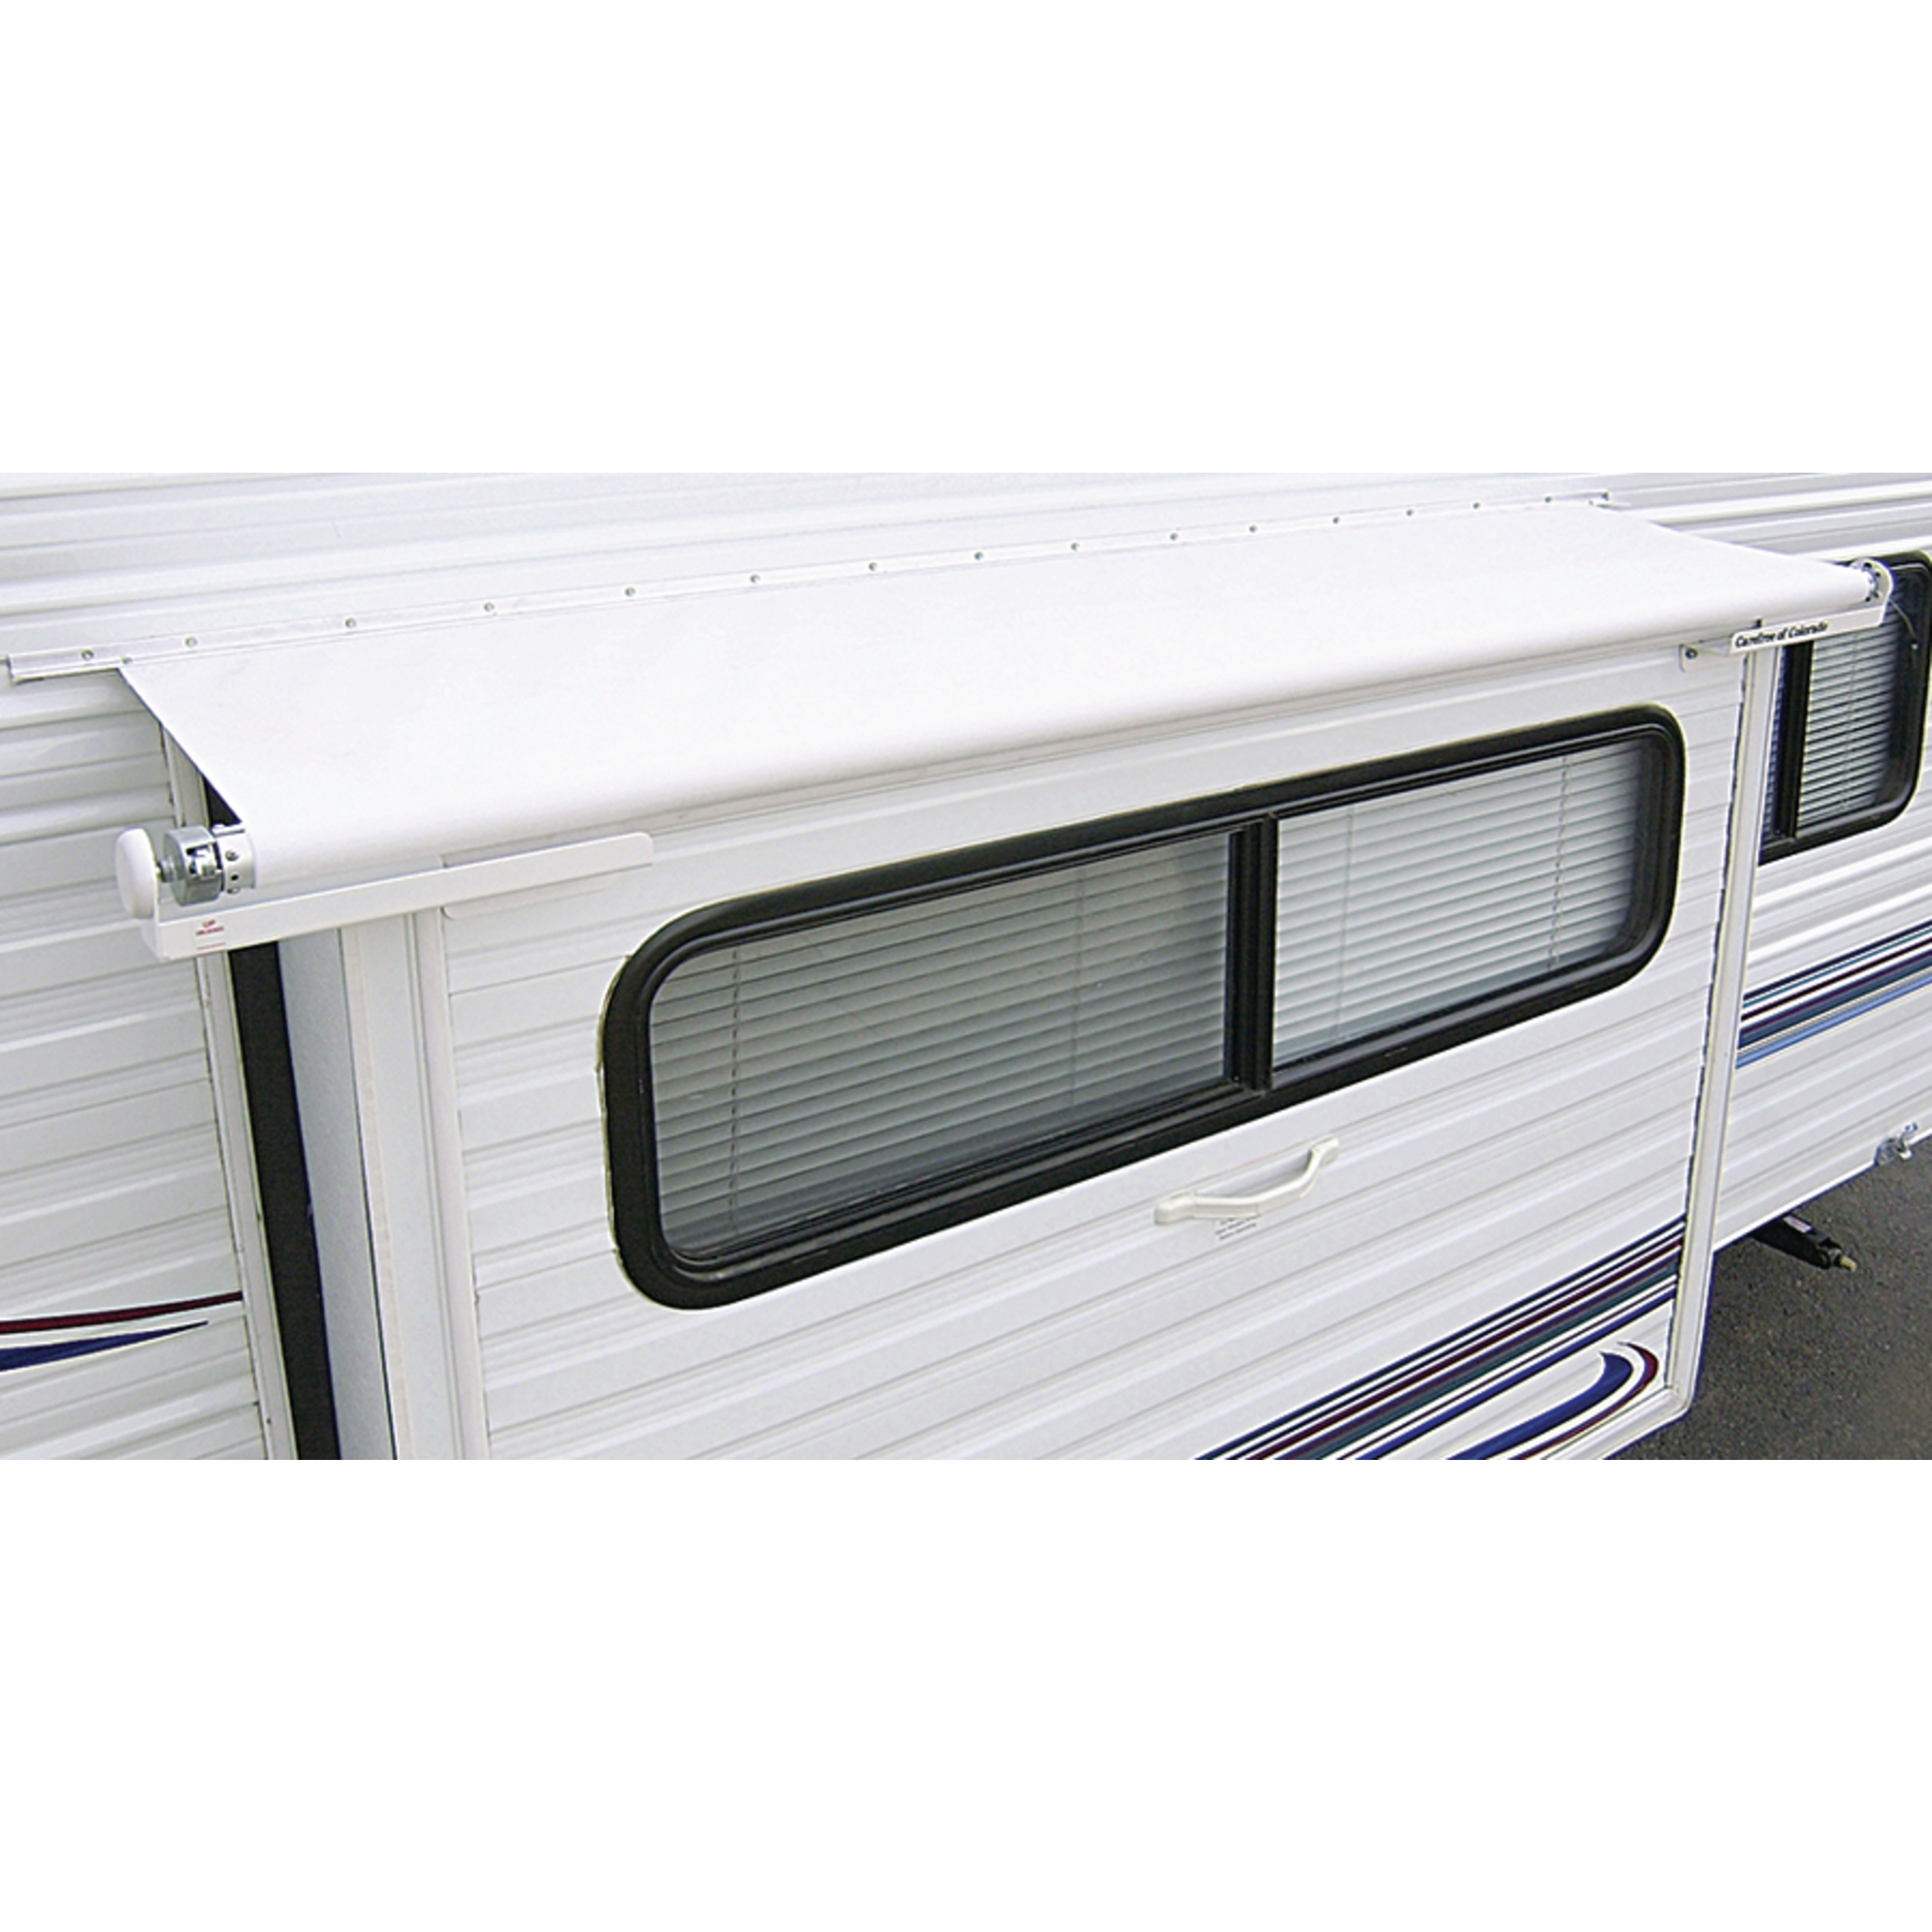 "Carefree DG0910042 White RV Slideout Awning Replacement Fabric - 91"" Canopy Length"